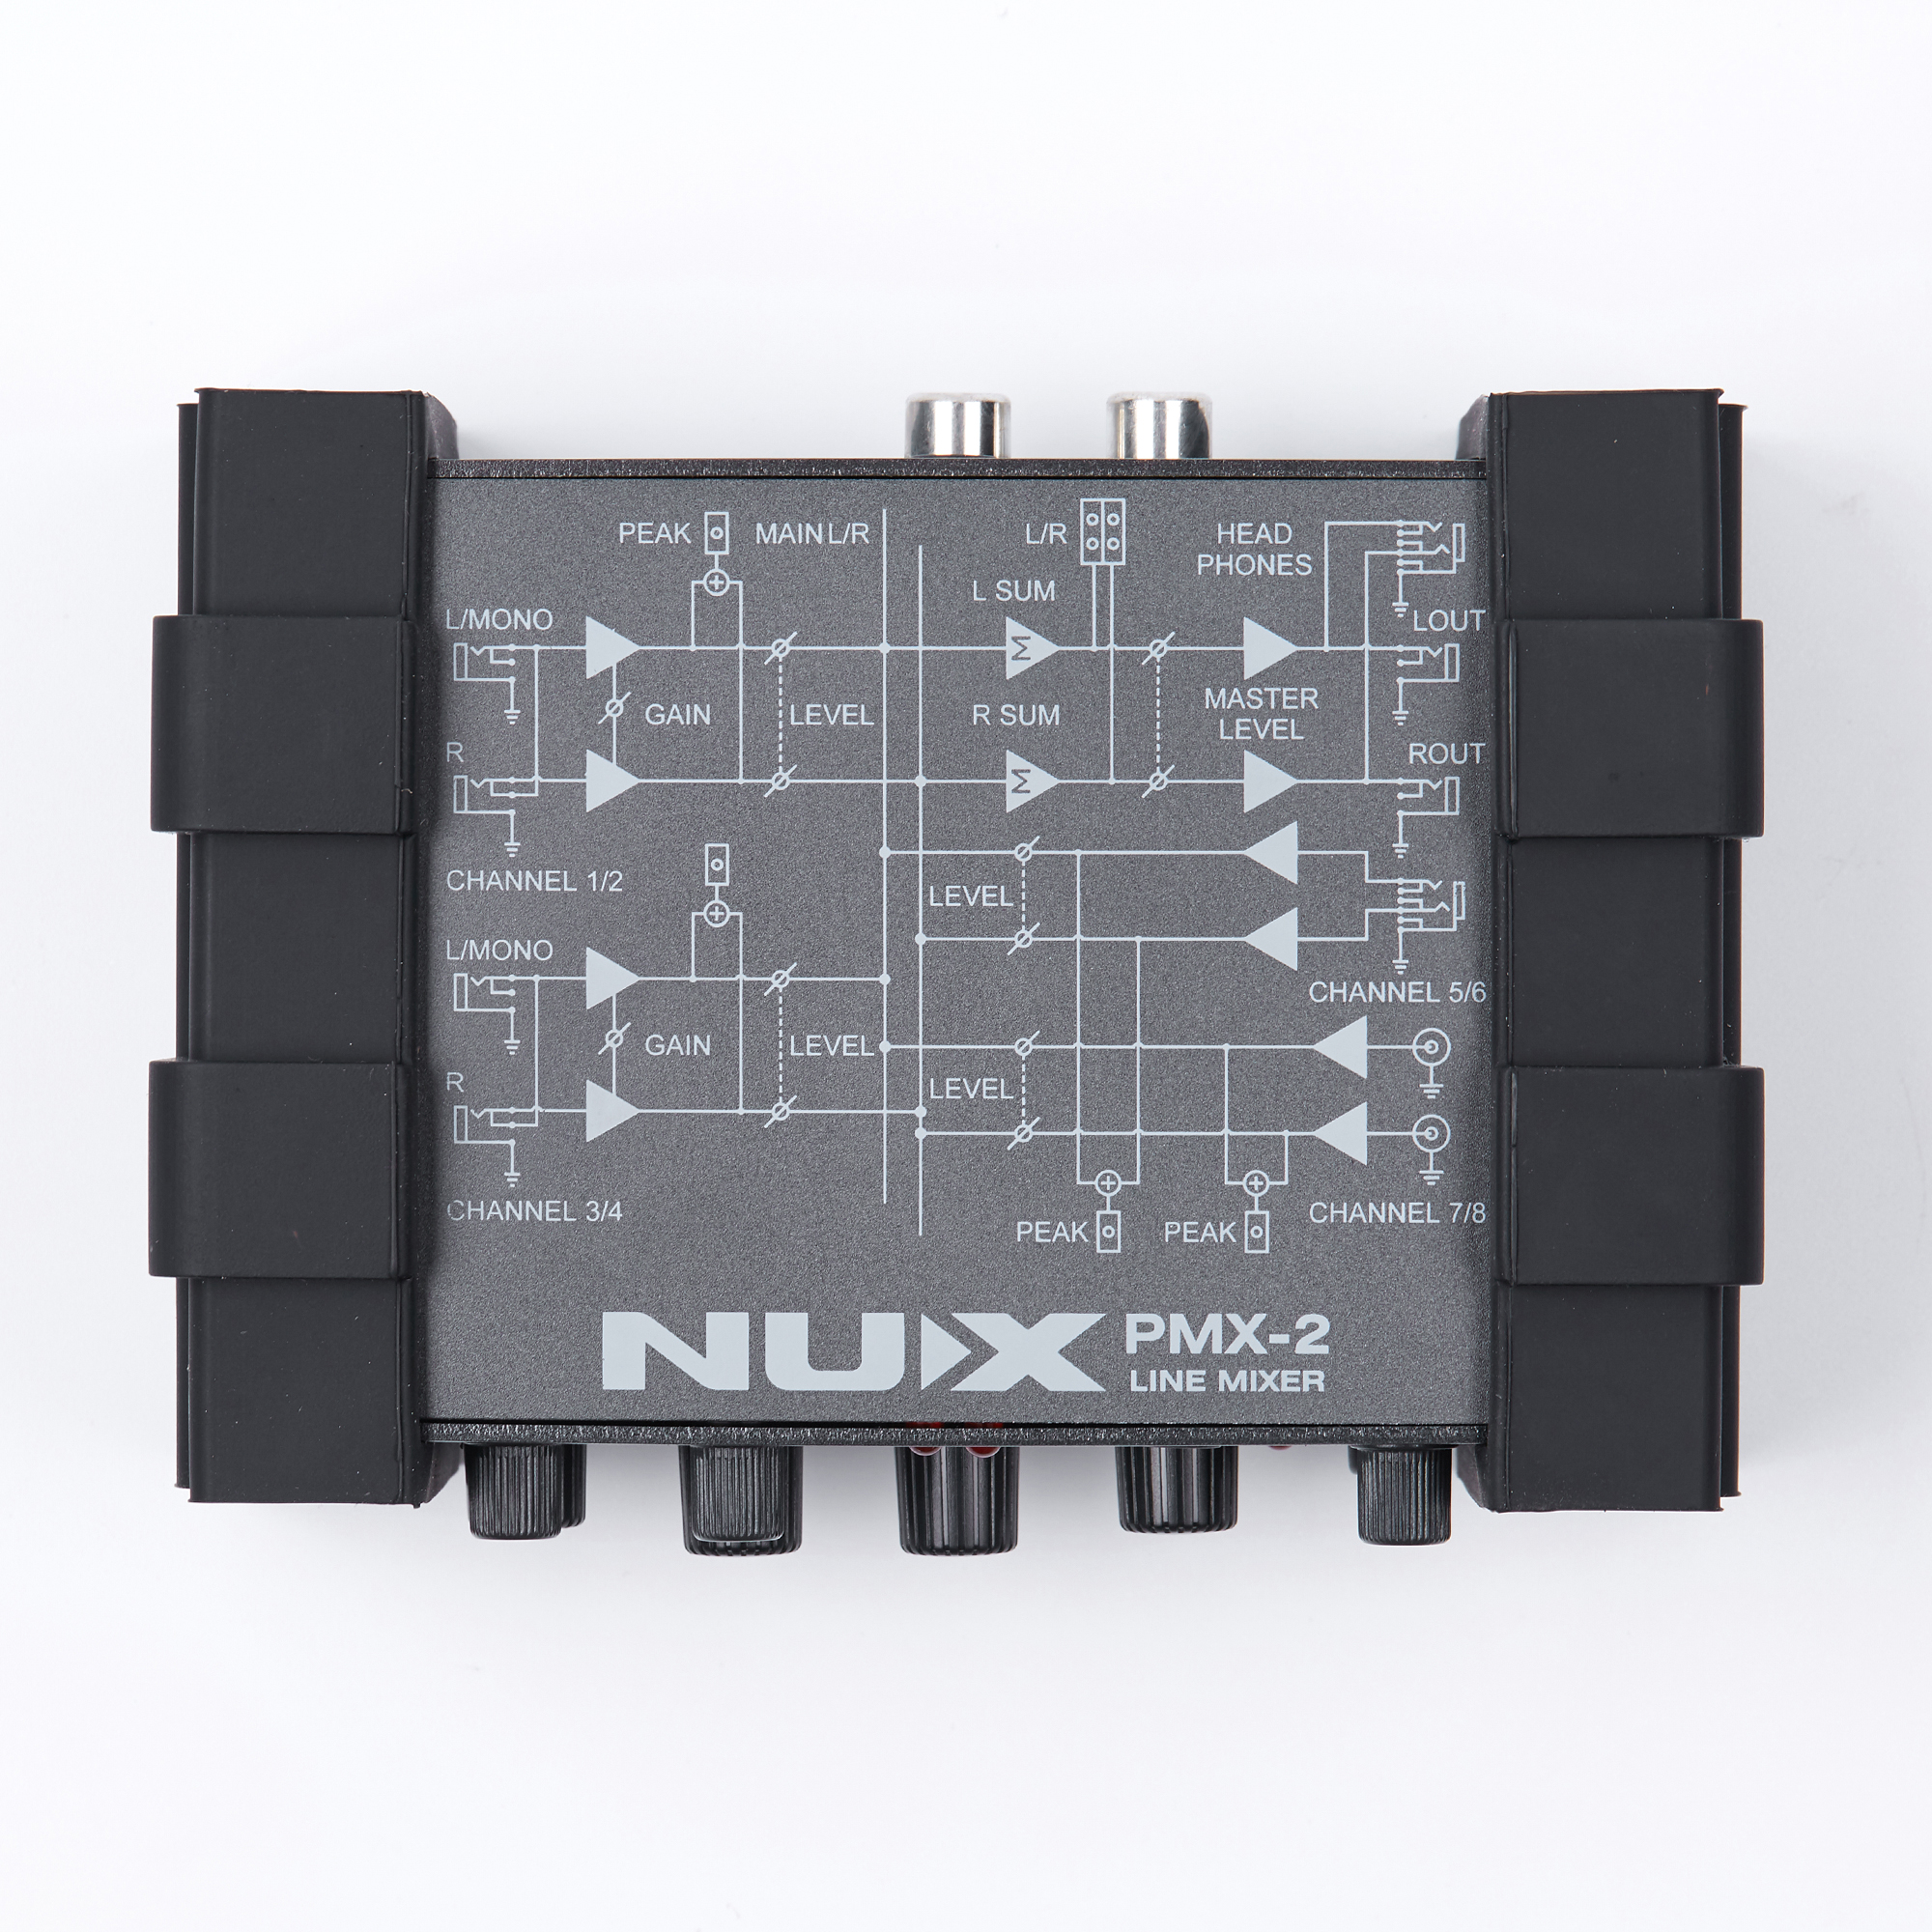 Gain Control 8 Inputs and 2 Outputs NUX PMX-2 Multi-Channel Mini Mixer 30 Musical Instruments Accessories for Guitar Bass Player платье top secret top secret to795ewvss02